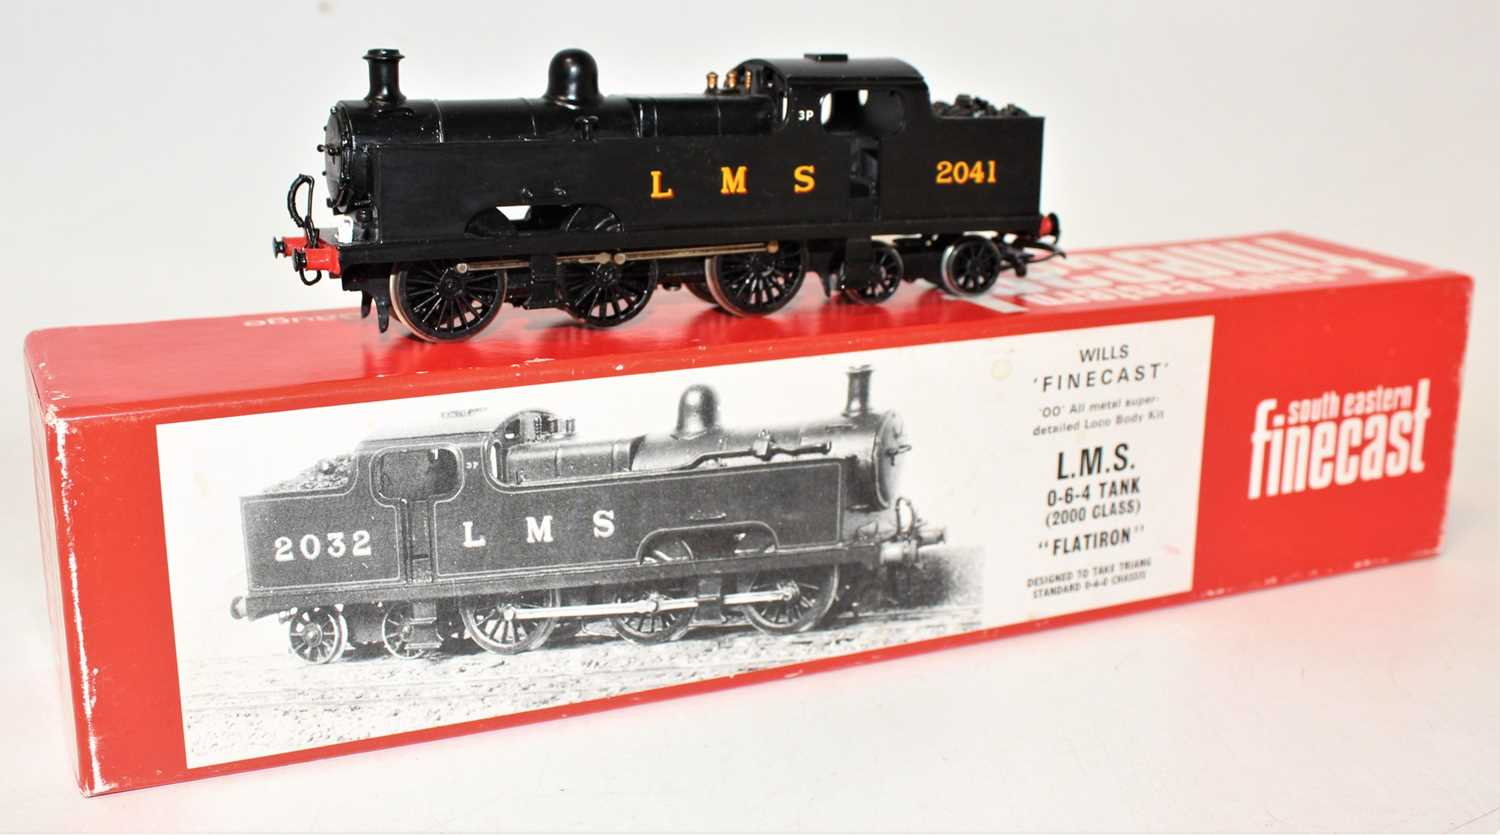 A Wills Finecast 00 scale white metal kit built model of a flat iron LMS 0-6-4 tank loco finished in